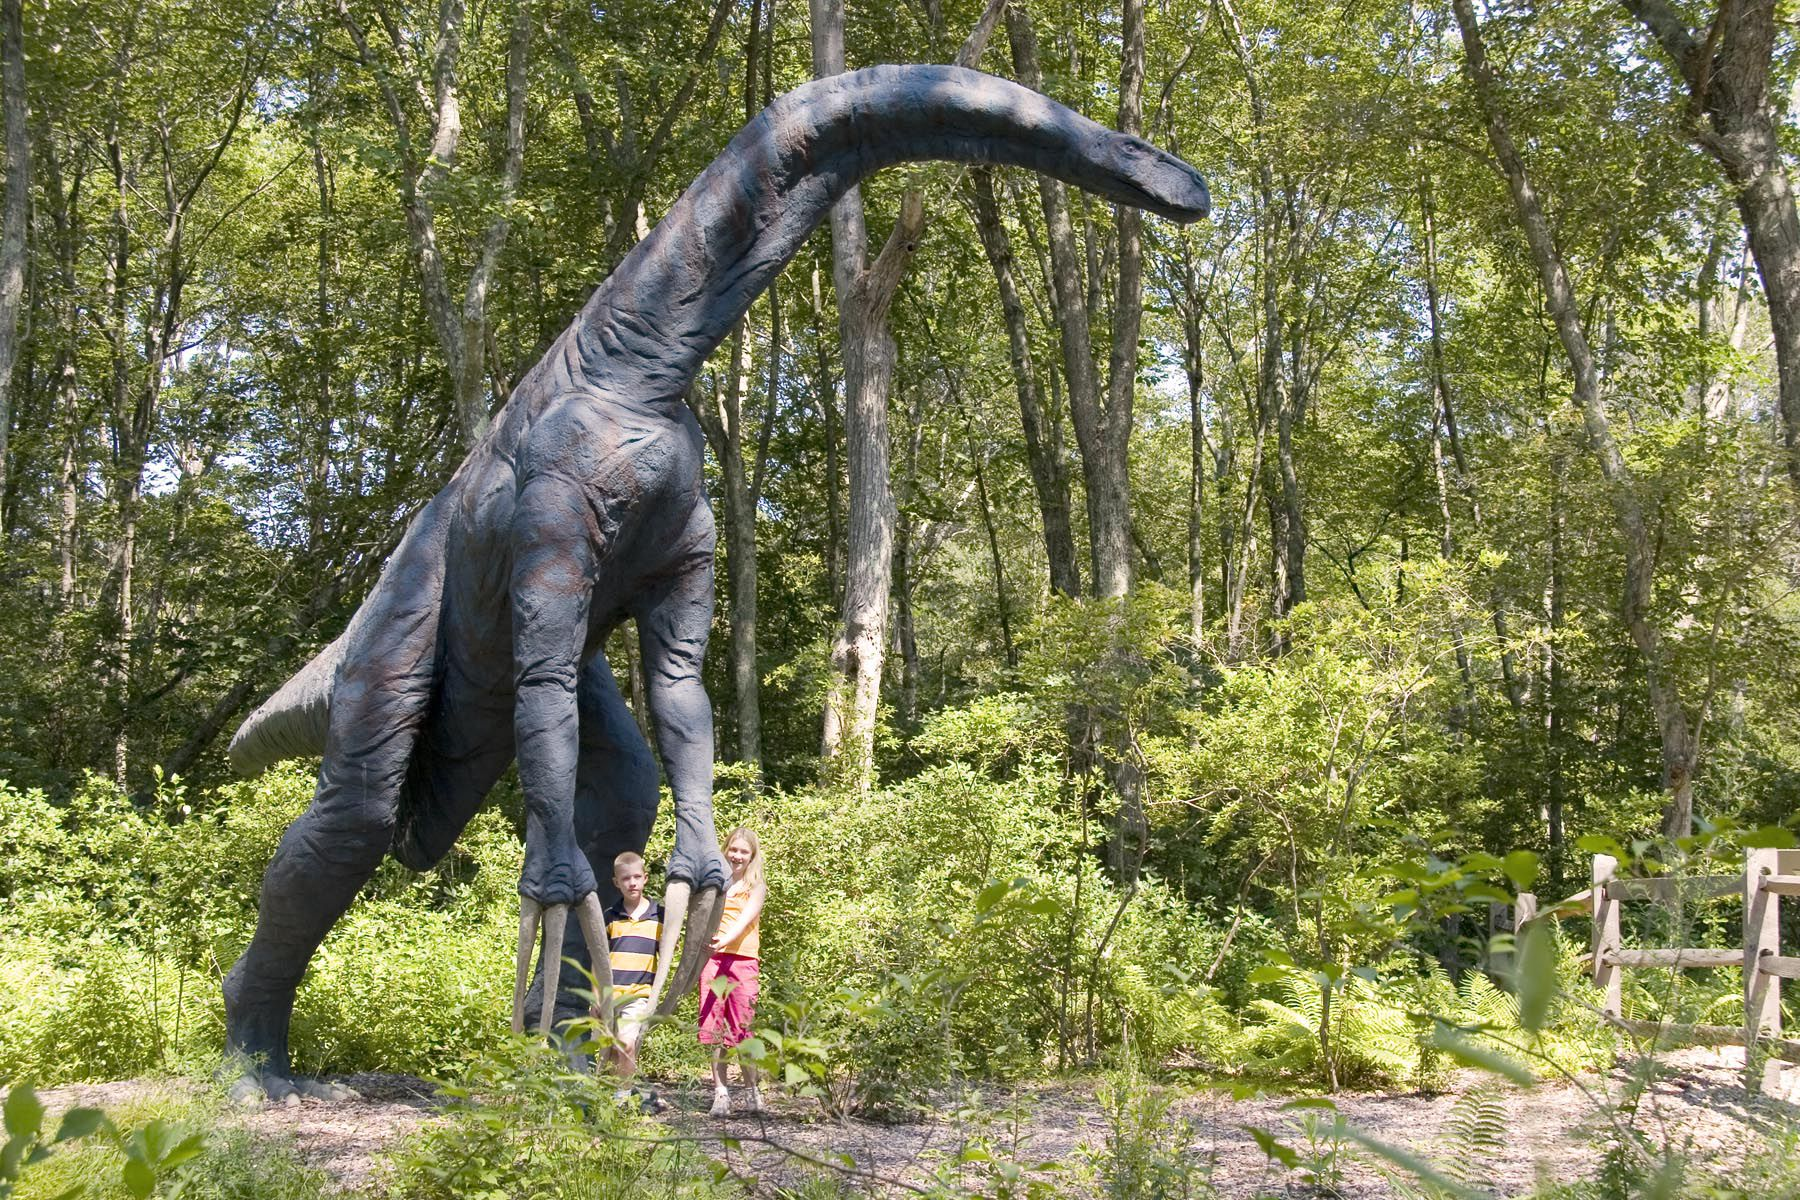 Modle of Therizinosaurus outside with two children posing by hands